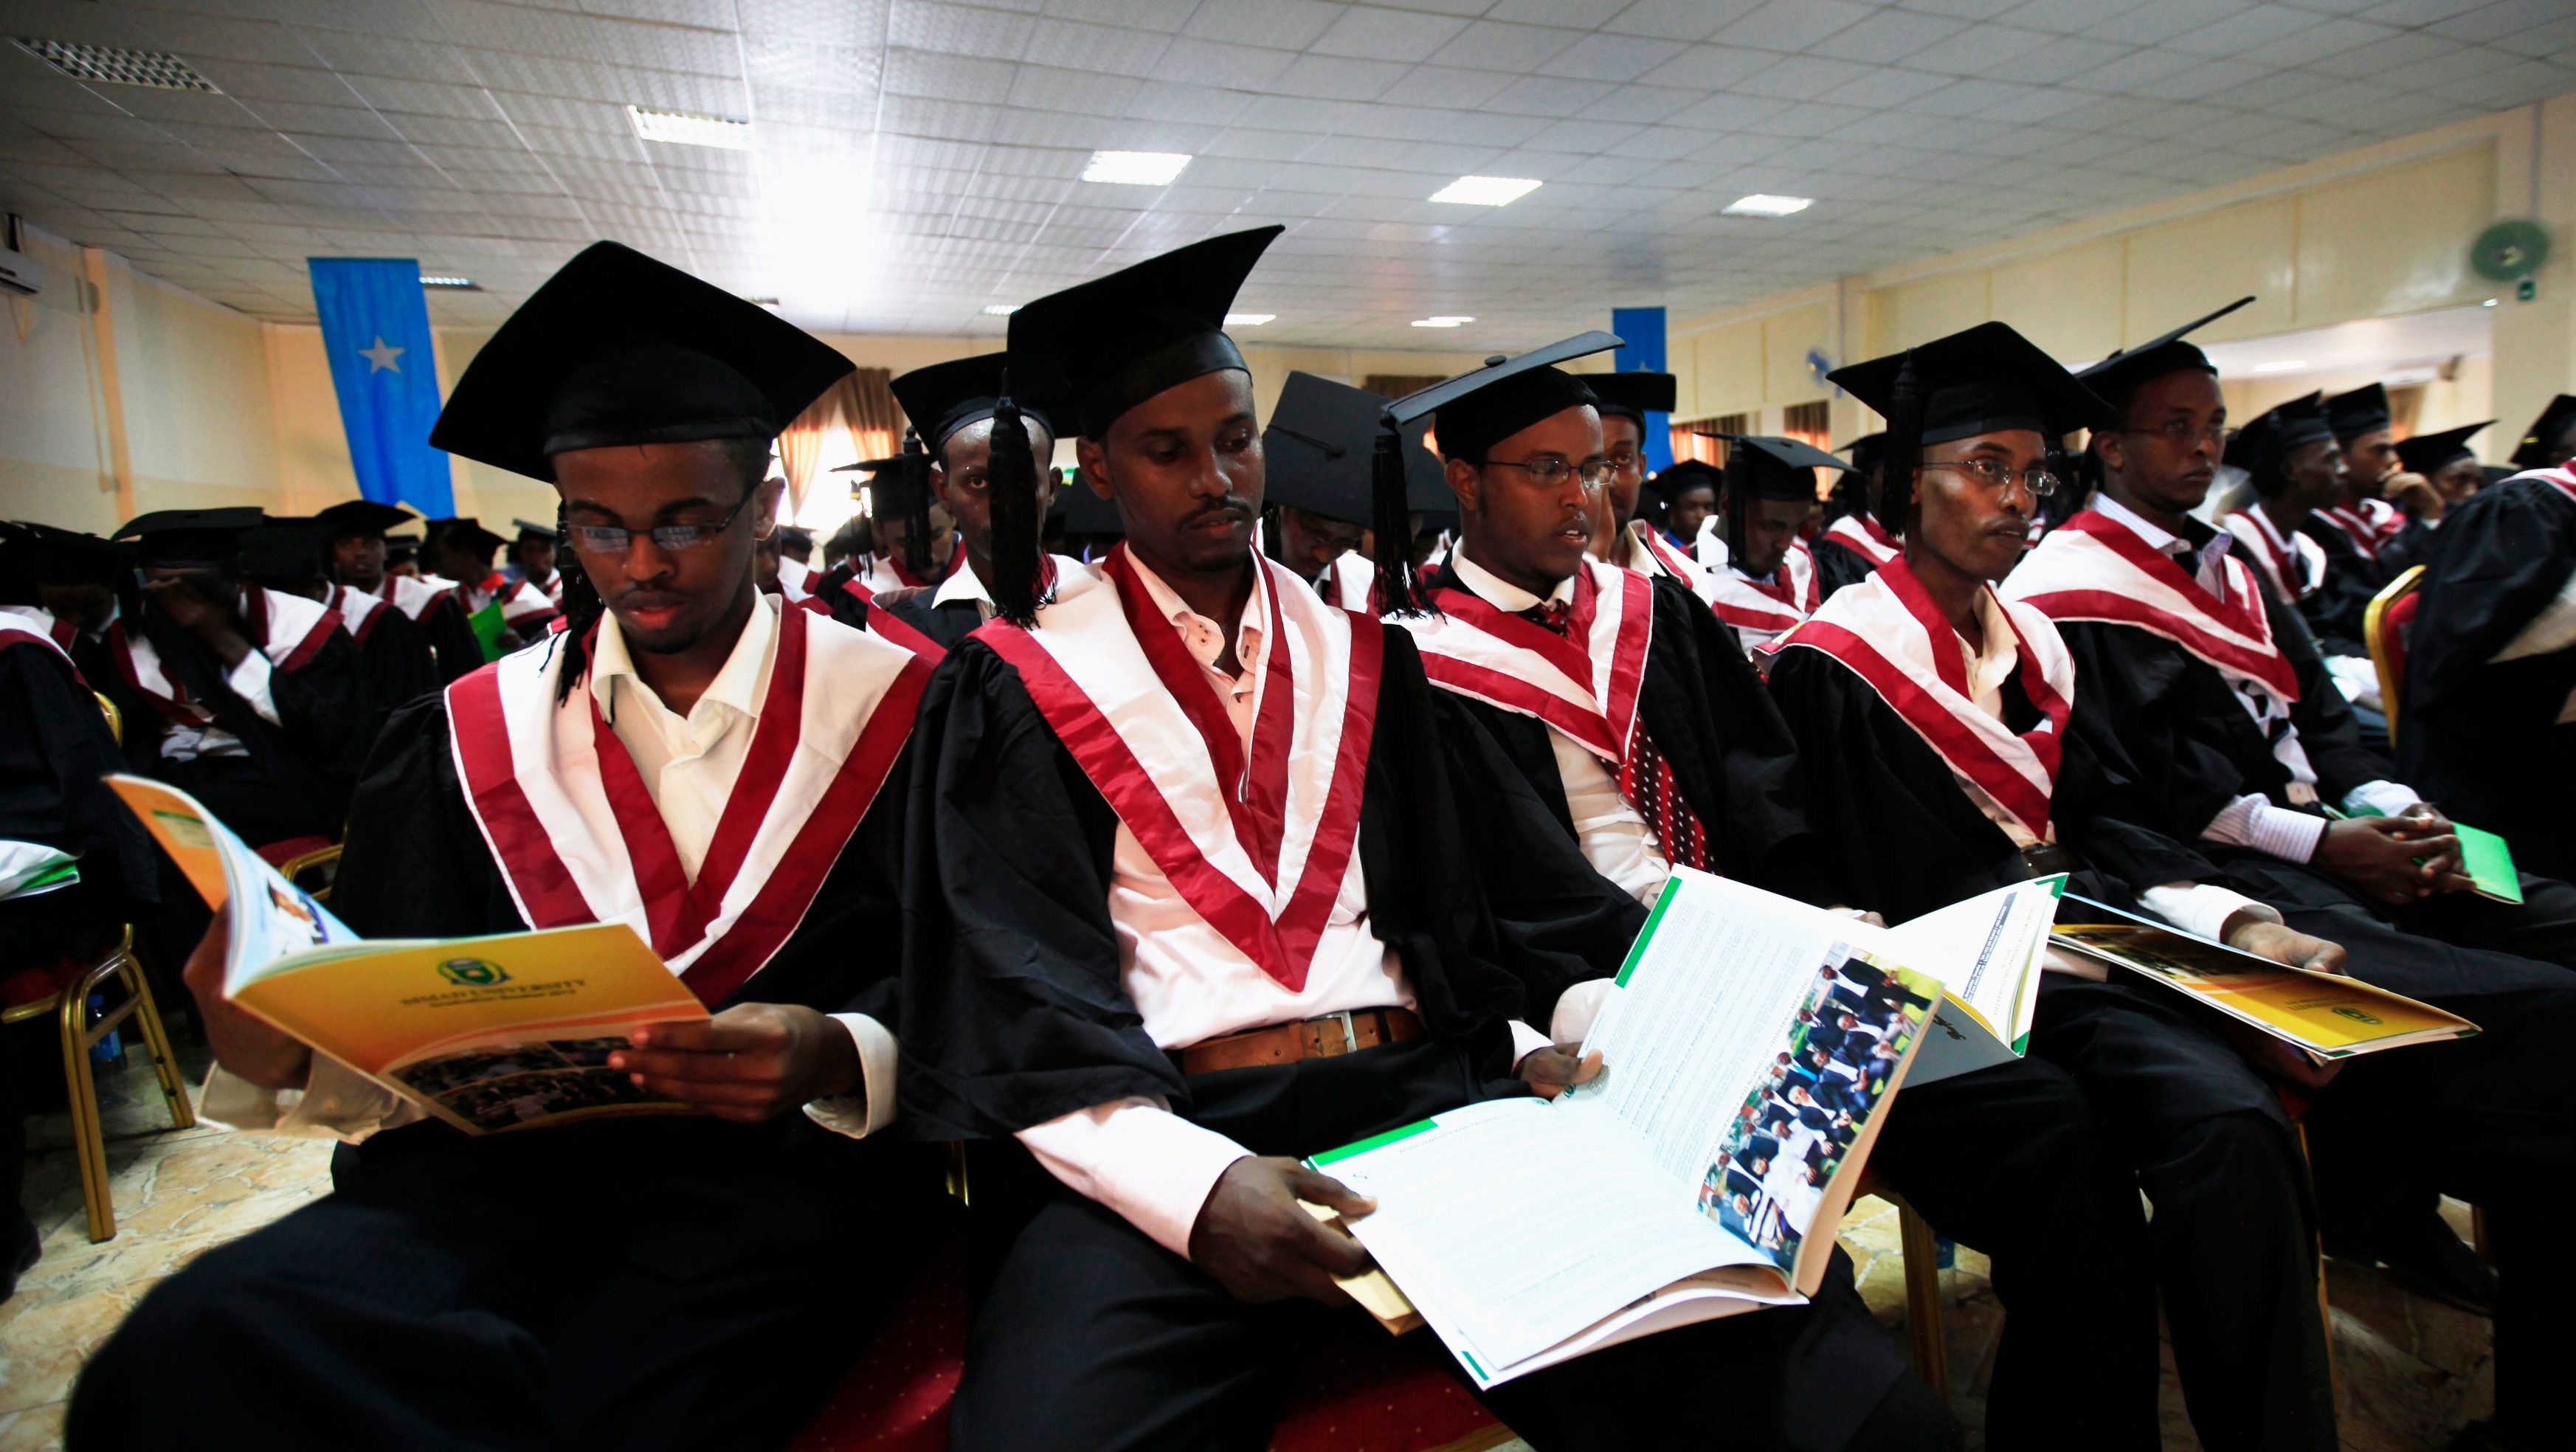 Students of SIMAD University attend their graduation ceremony, along with over 600 other students, in Mogadishu